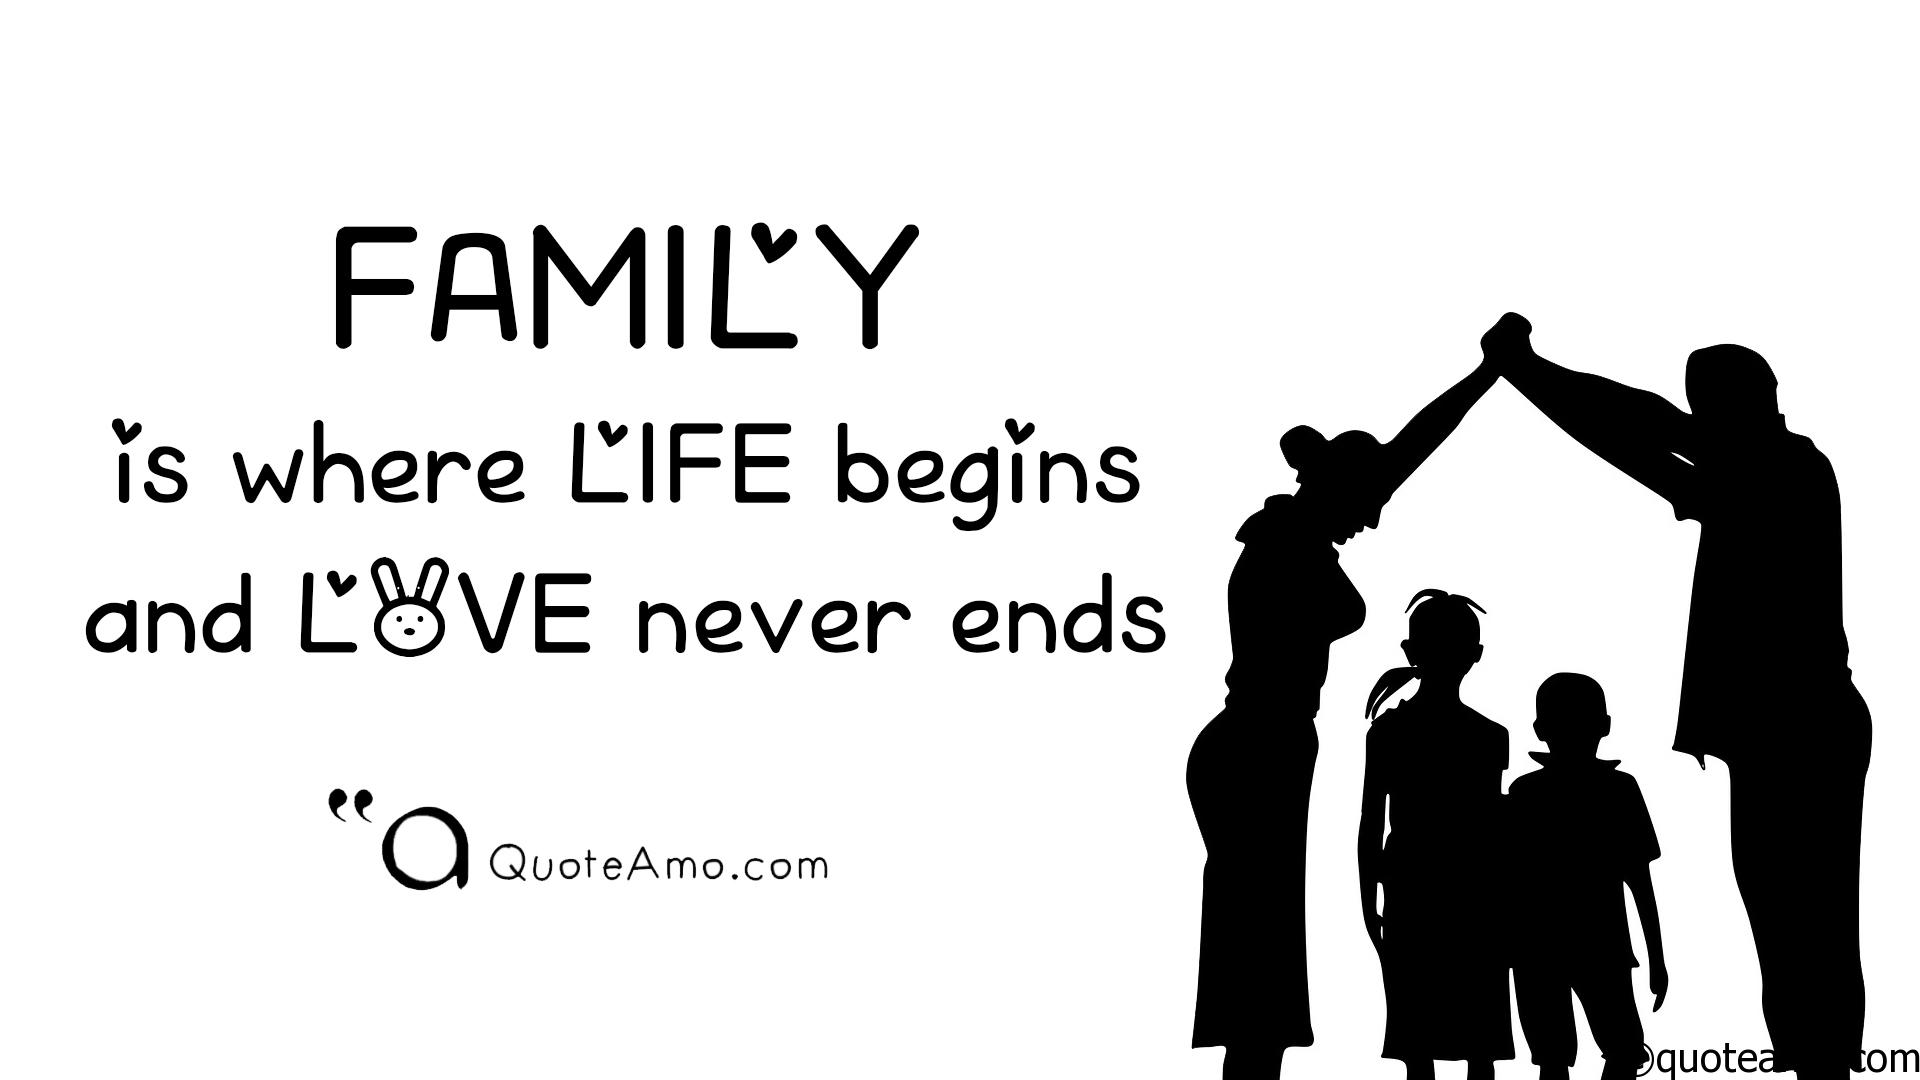 Quote Related To Life Quotes About Family Background Quotes Hd Screen 1920 * 1080